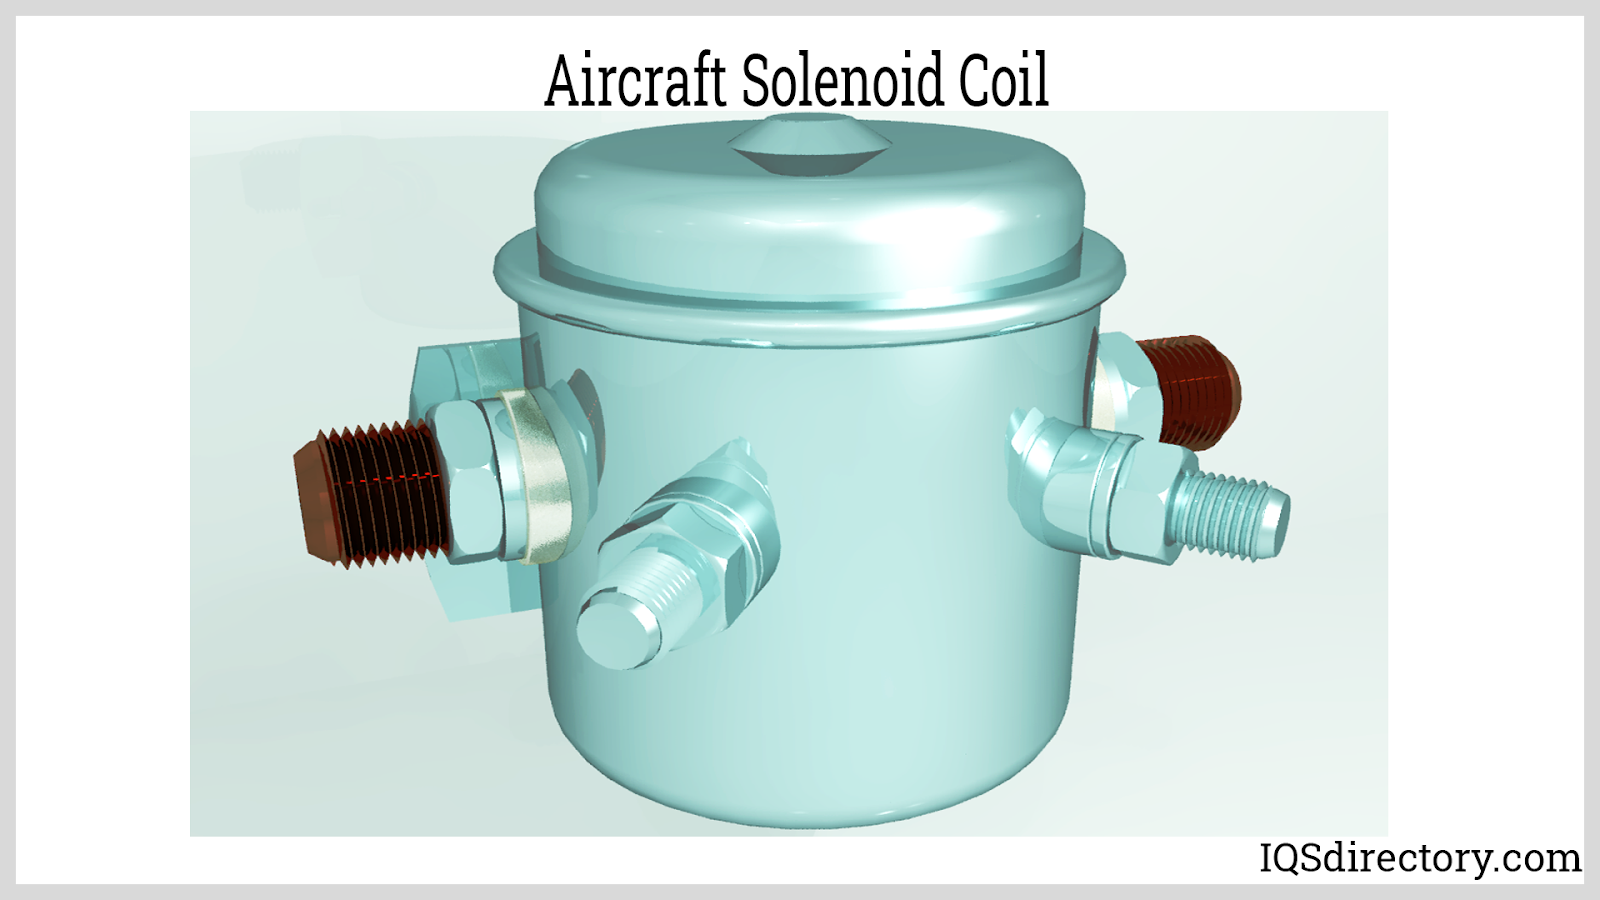 Aircraft Solenoid Coil